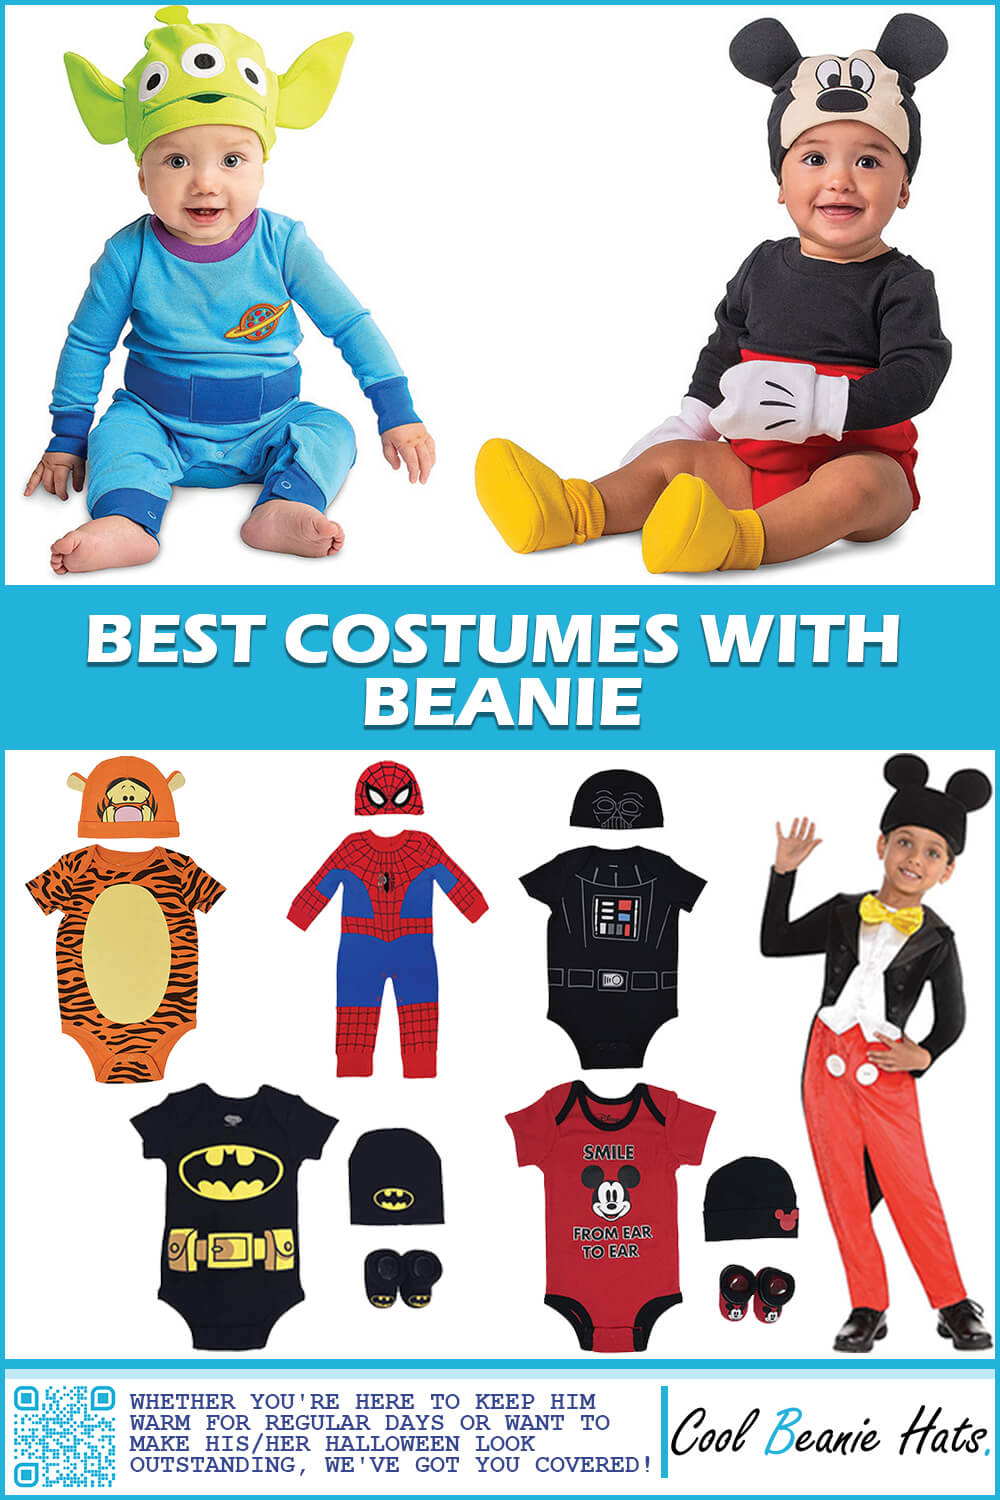 Best Costumes With Beanie